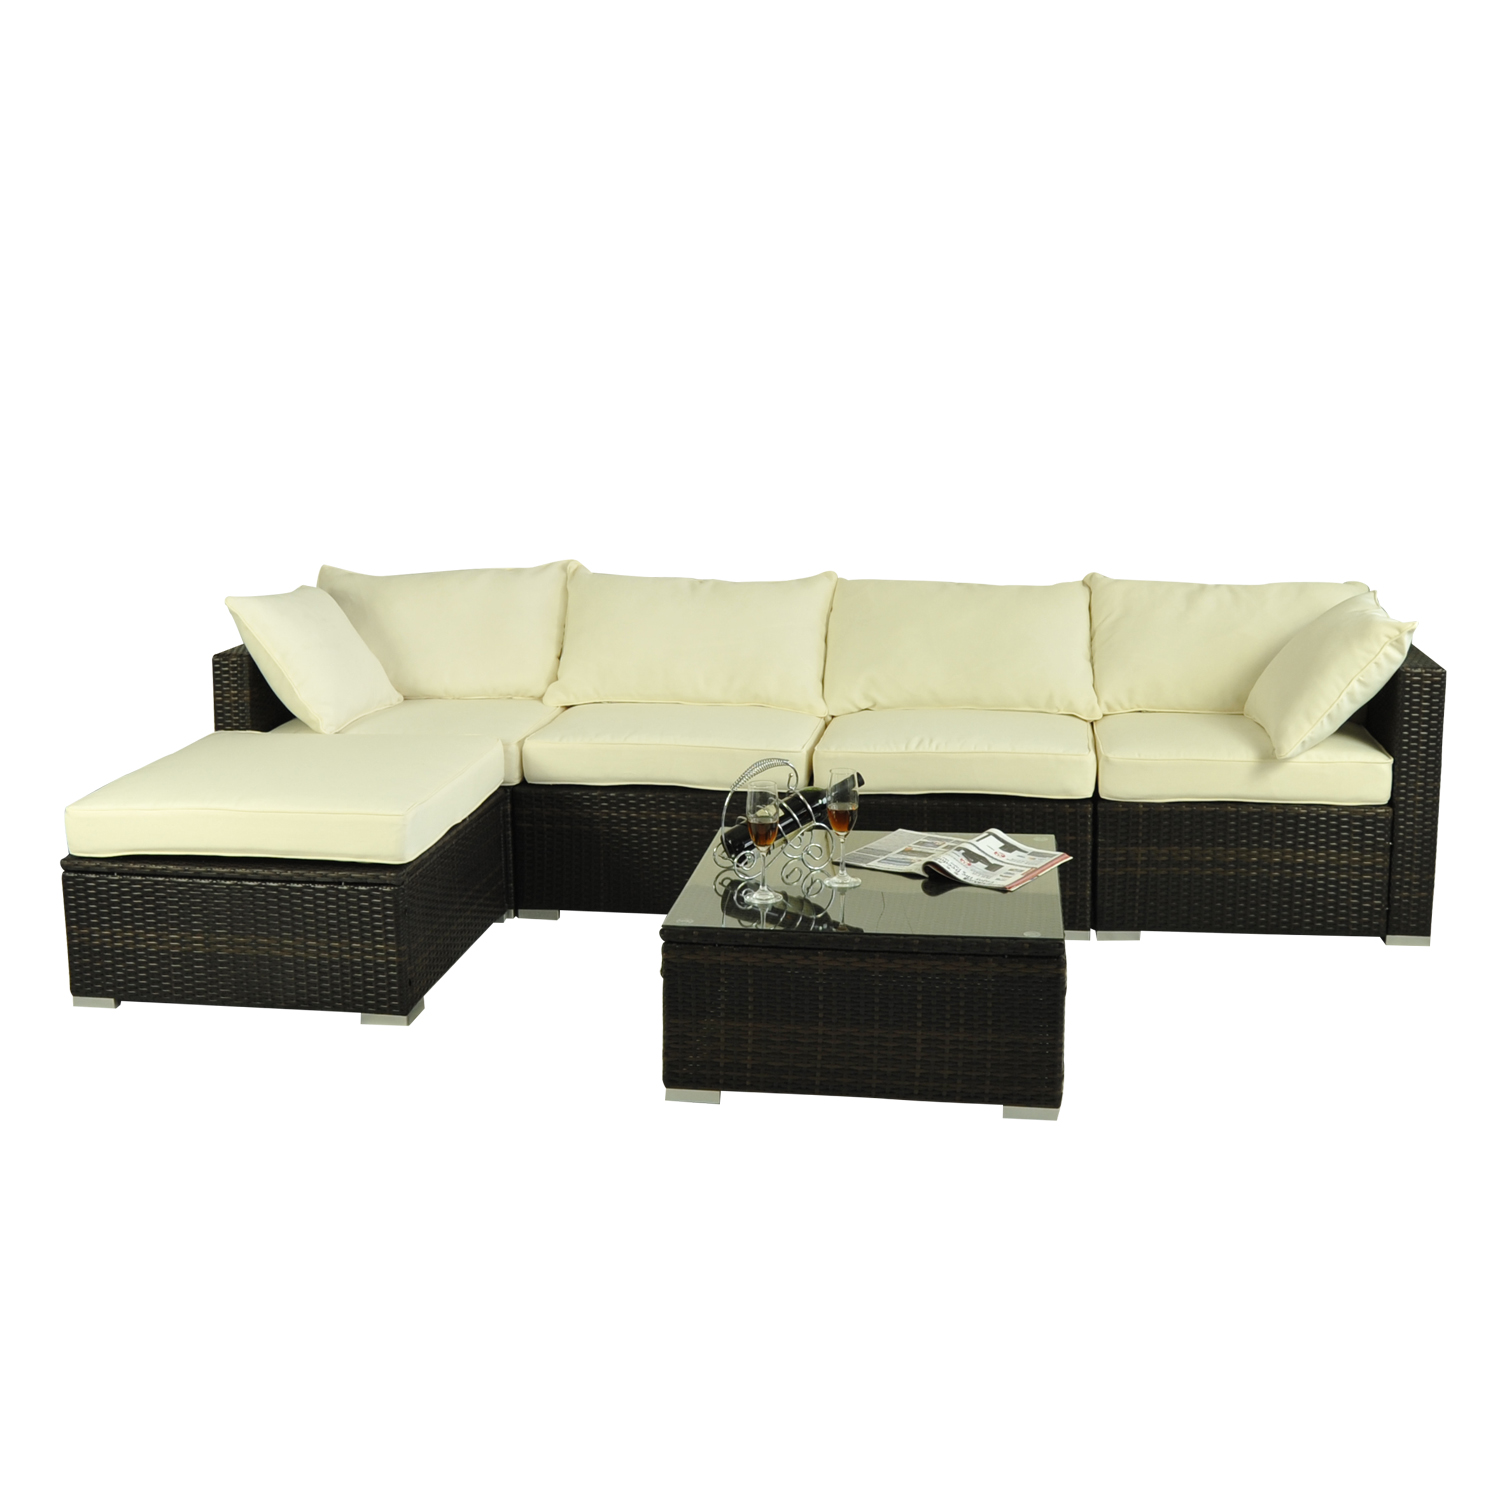 Rattan Sofa Set Ebay Outsunny 6pc Rattan Wicker Patio Sofa Set Sectional Garden